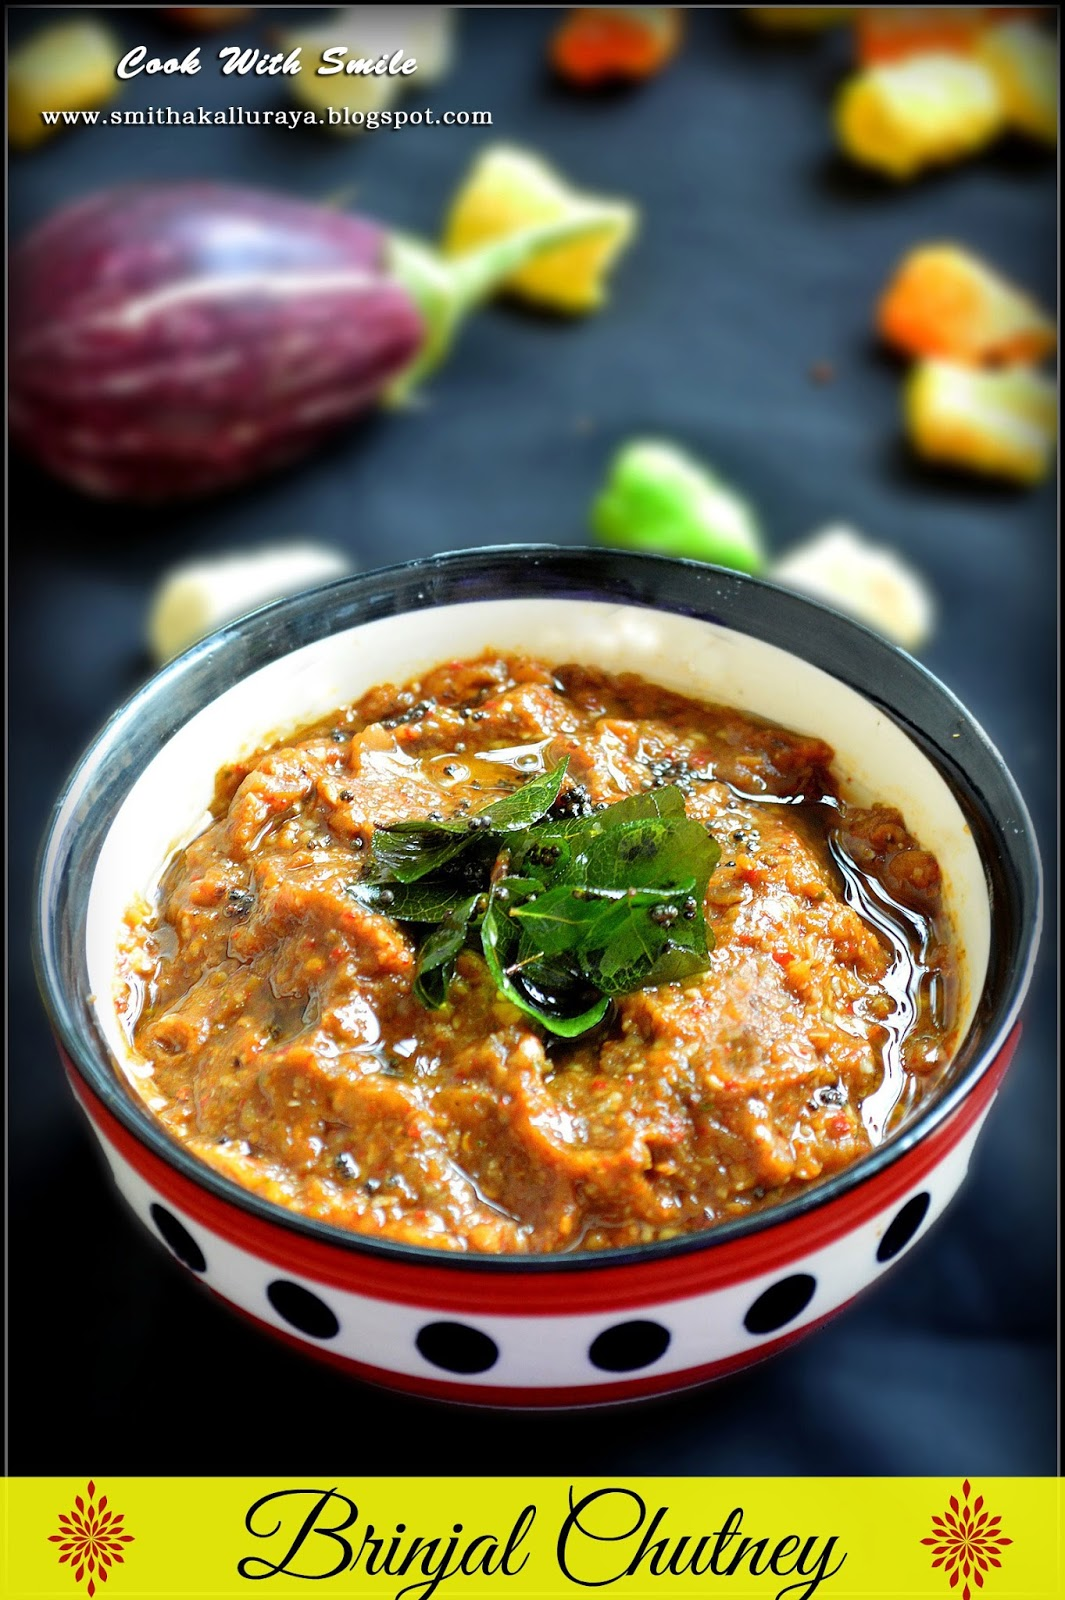 how to cook with chutney